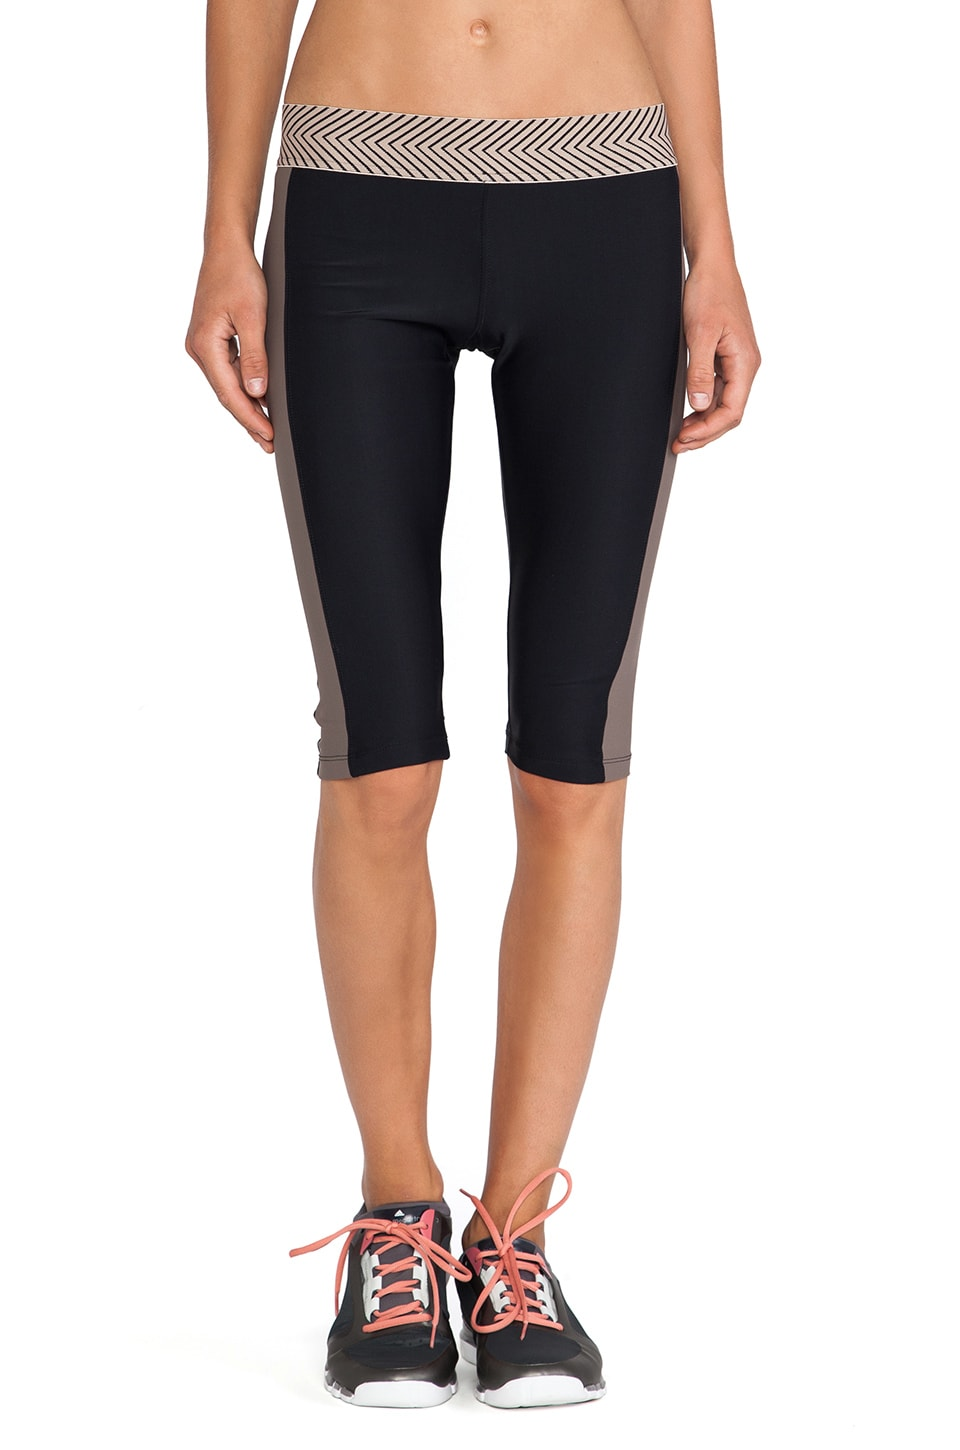 OLYMPIA Activewear Zeus Cropped Legging in Black/Taupe